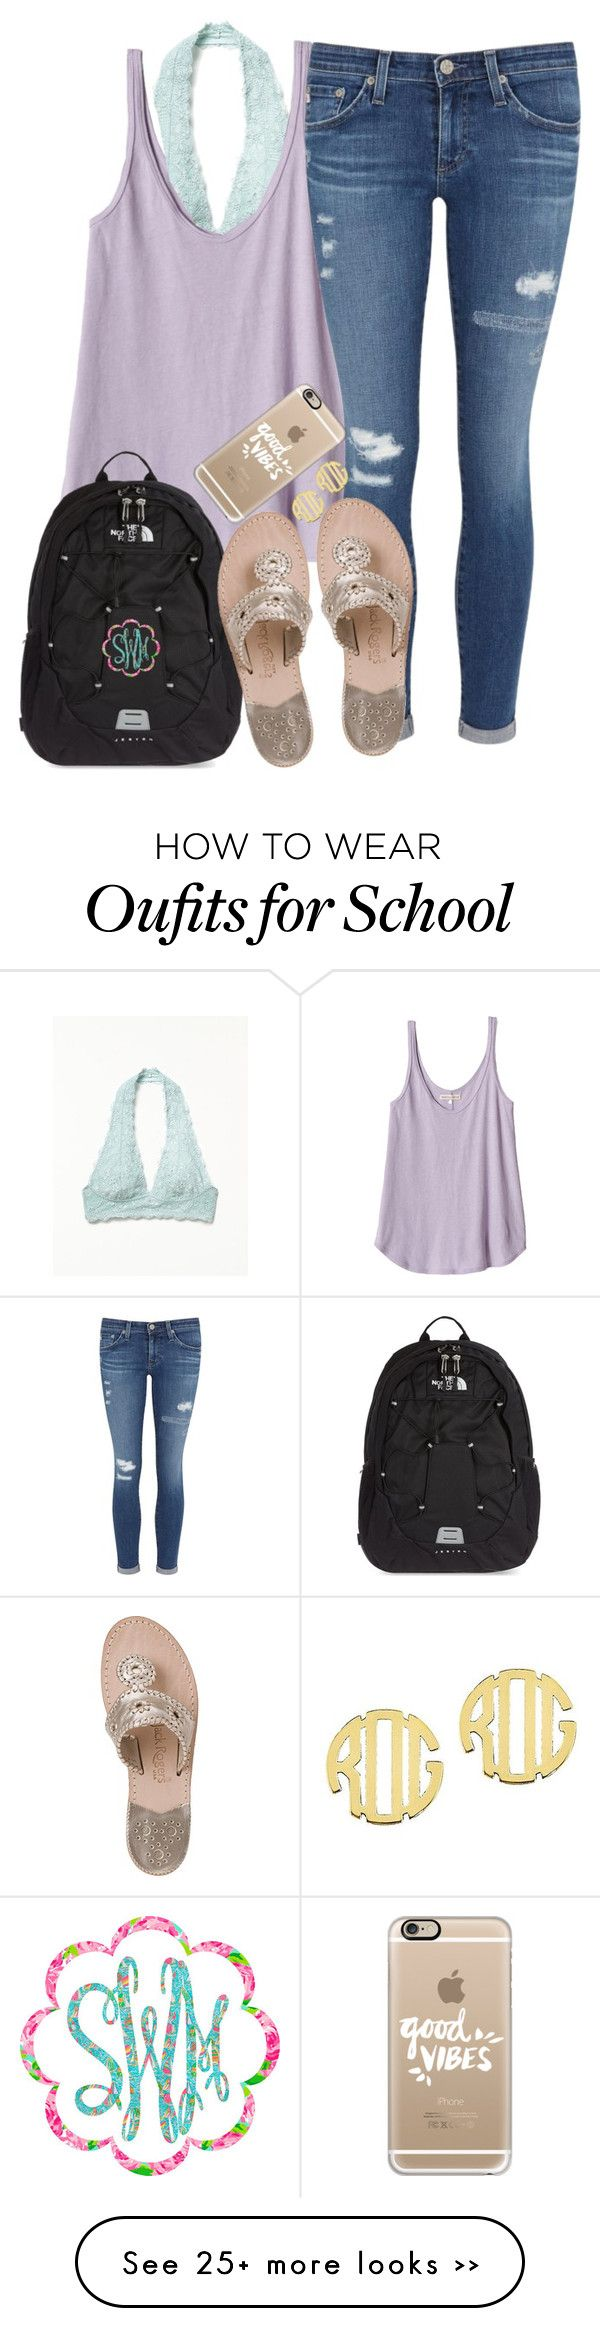 """""""back to school: comfy & cute"""" by judebellar03 on Polyvore"""